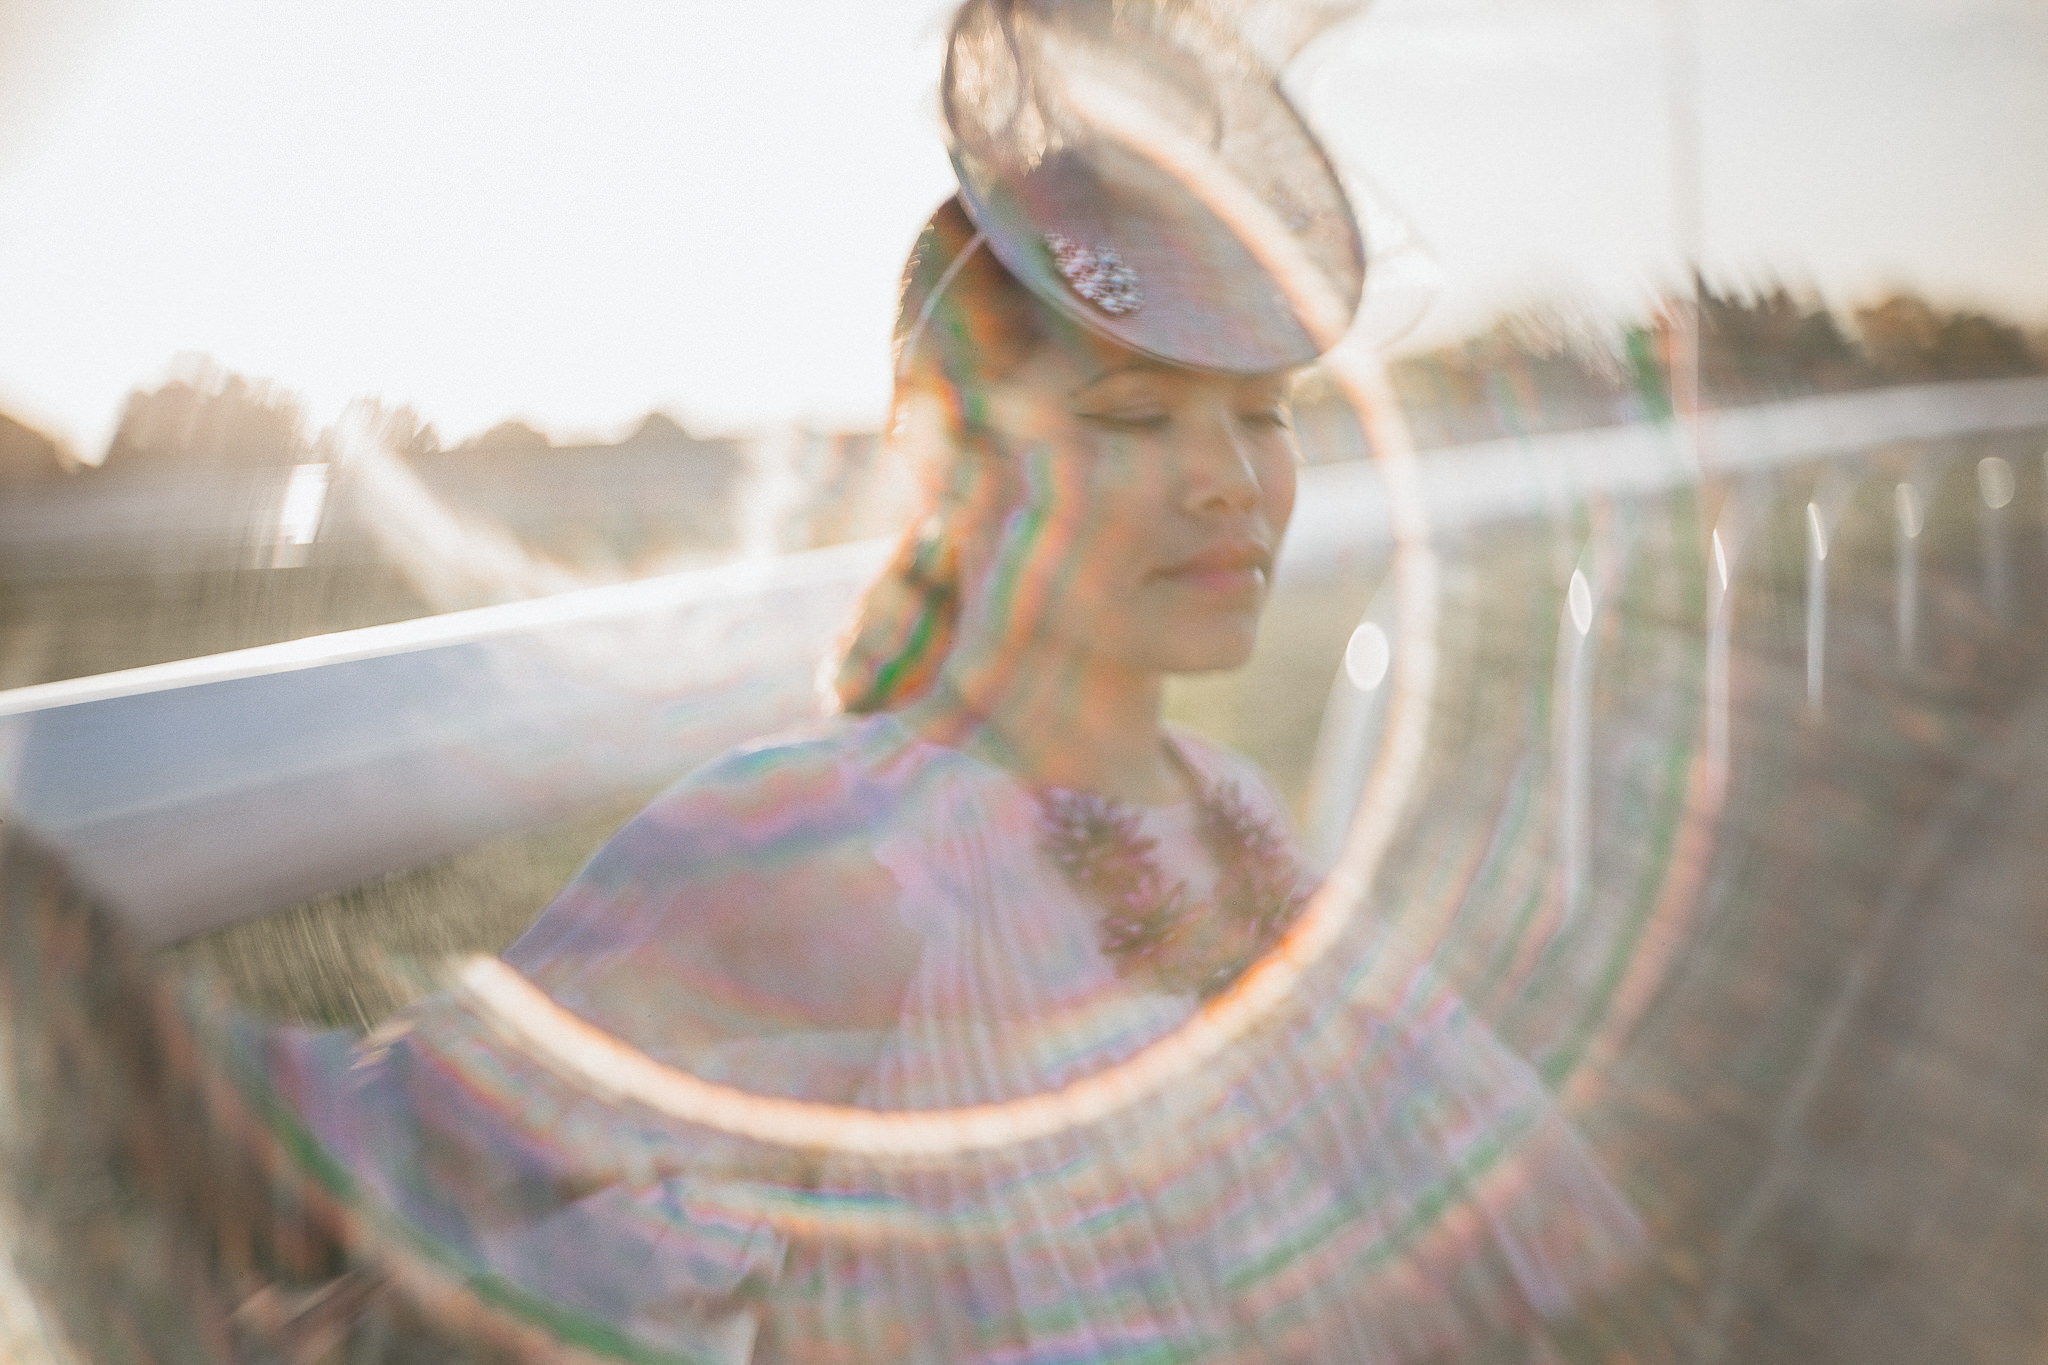 spring racing - lens flare